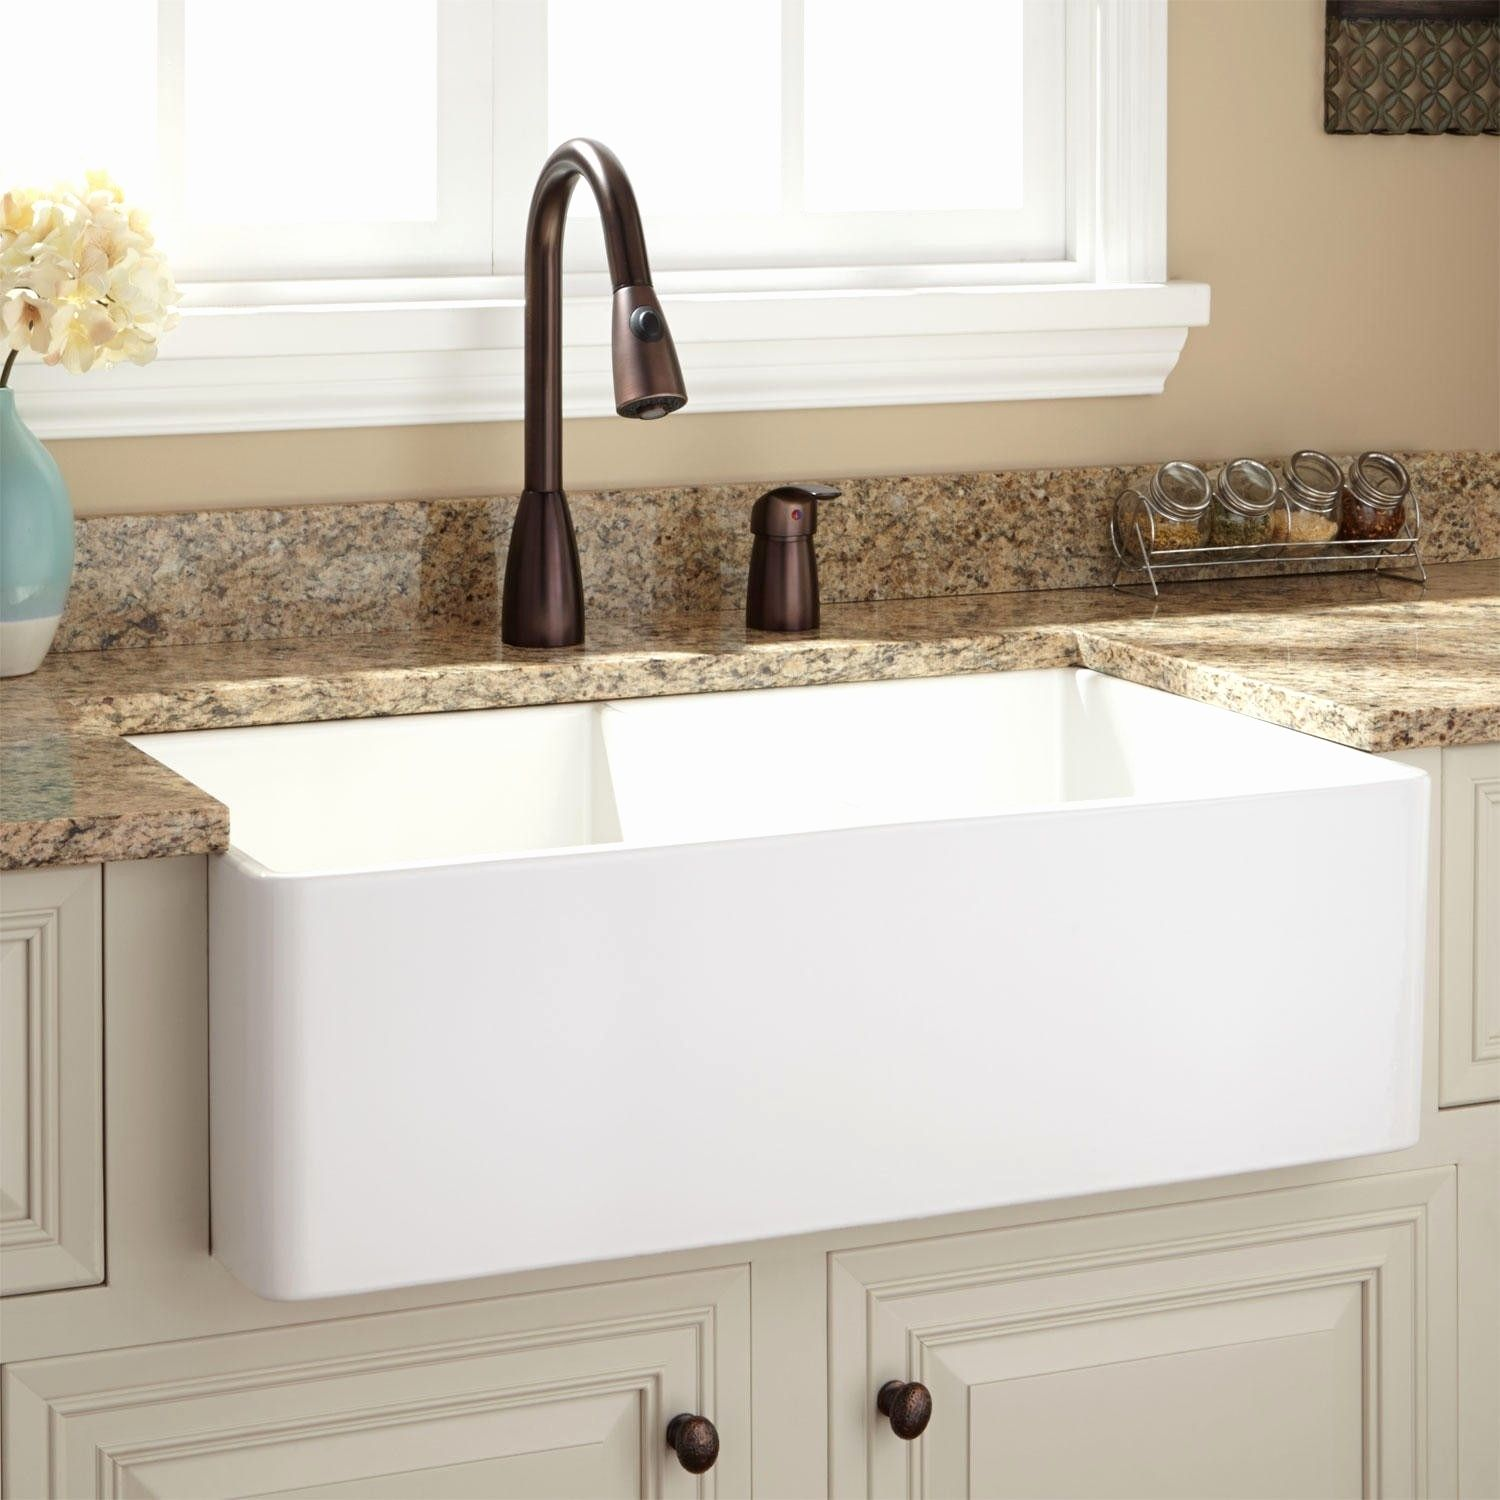 36 Kitchen Sink Best Of Fireclay Farmhouse A Front Double Bowl